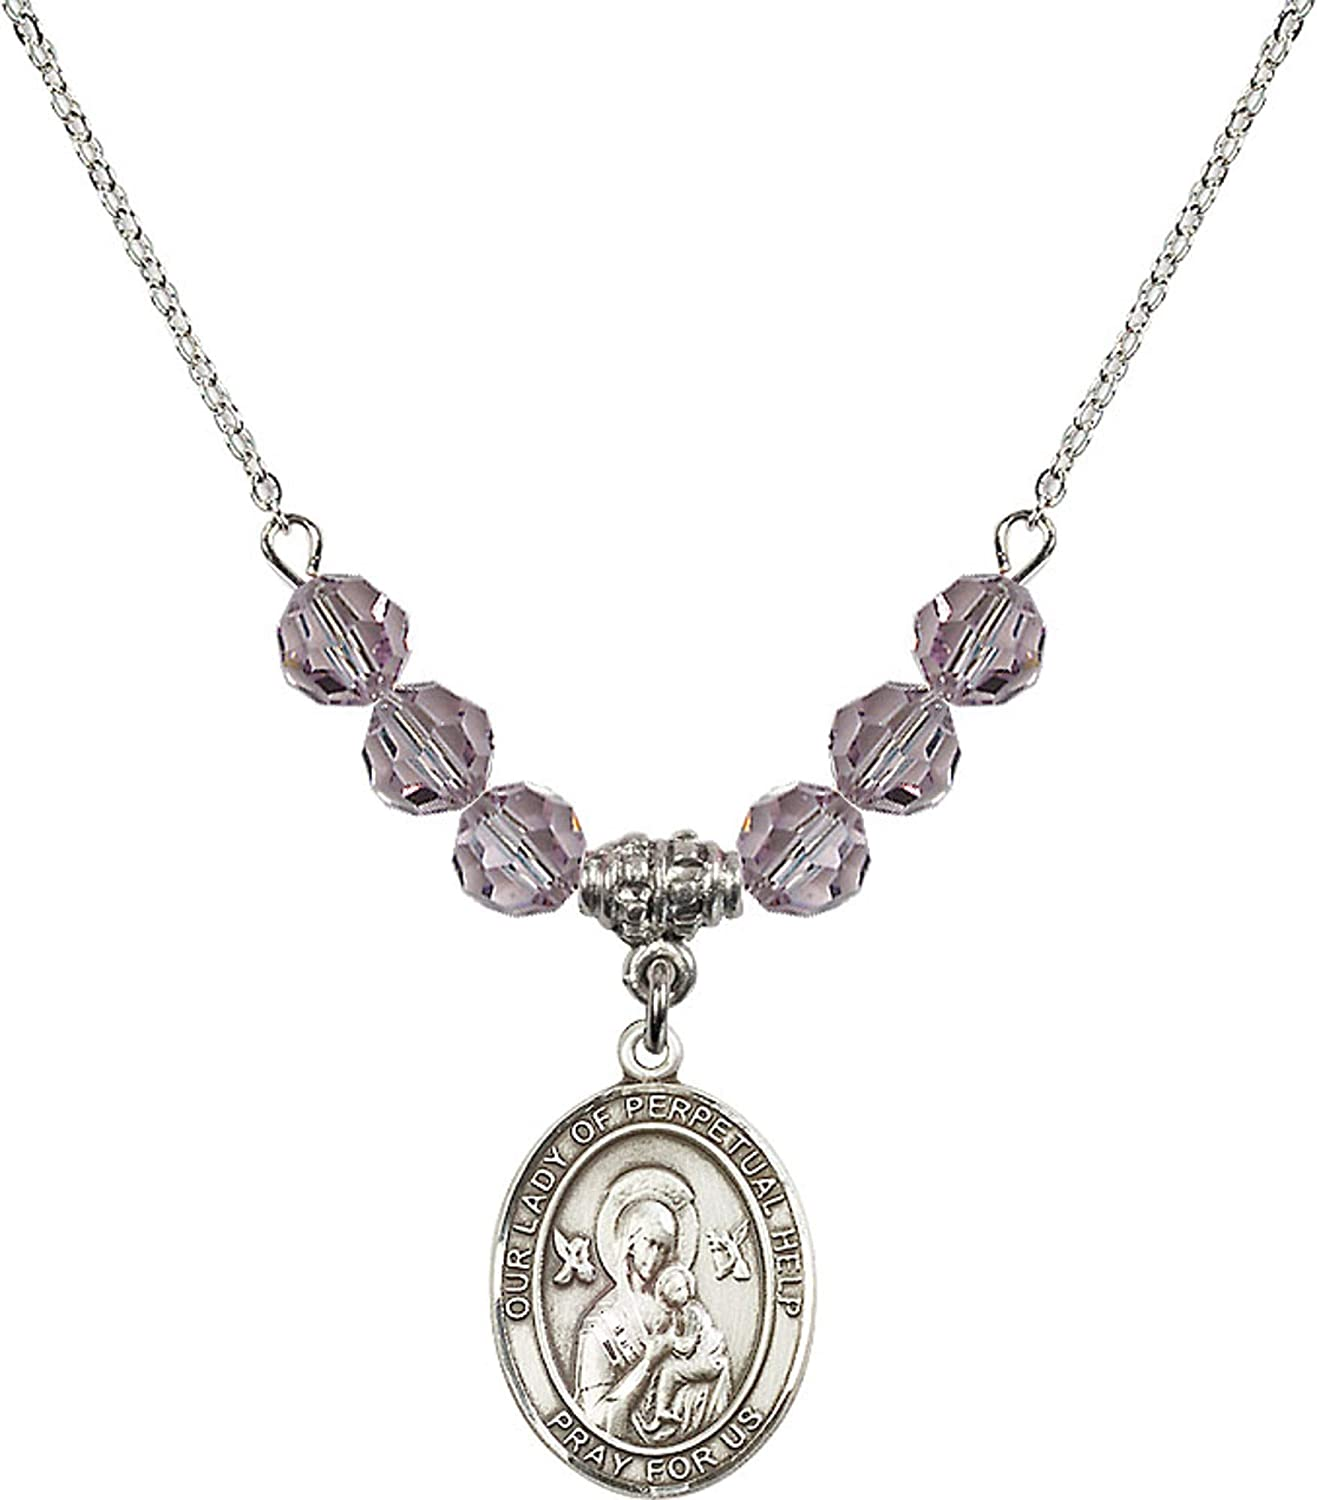 Bonyak Jewelry 18 Inch Rhodium Plated Necklace w// 6mm Light Purple February Birth Month Stone Beads and Our Lady of Perpetual Help Charm